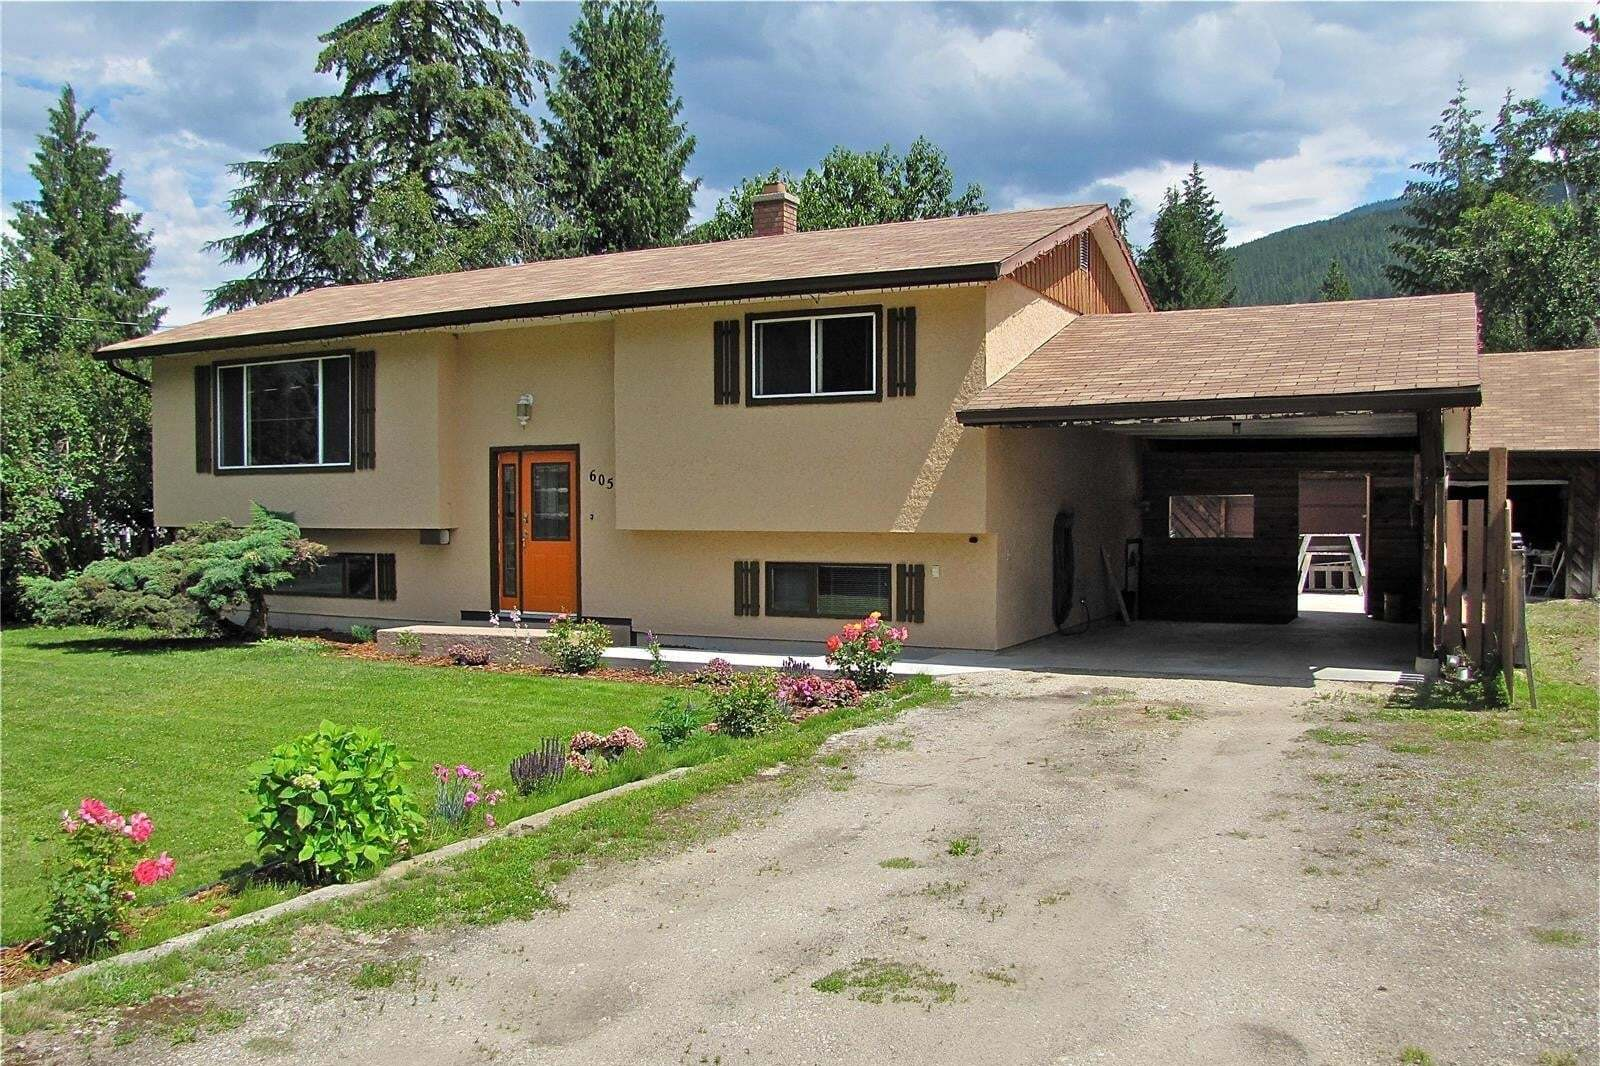 House for sale at 605 Birch Ave Sicamous British Columbia - MLS: 10210215